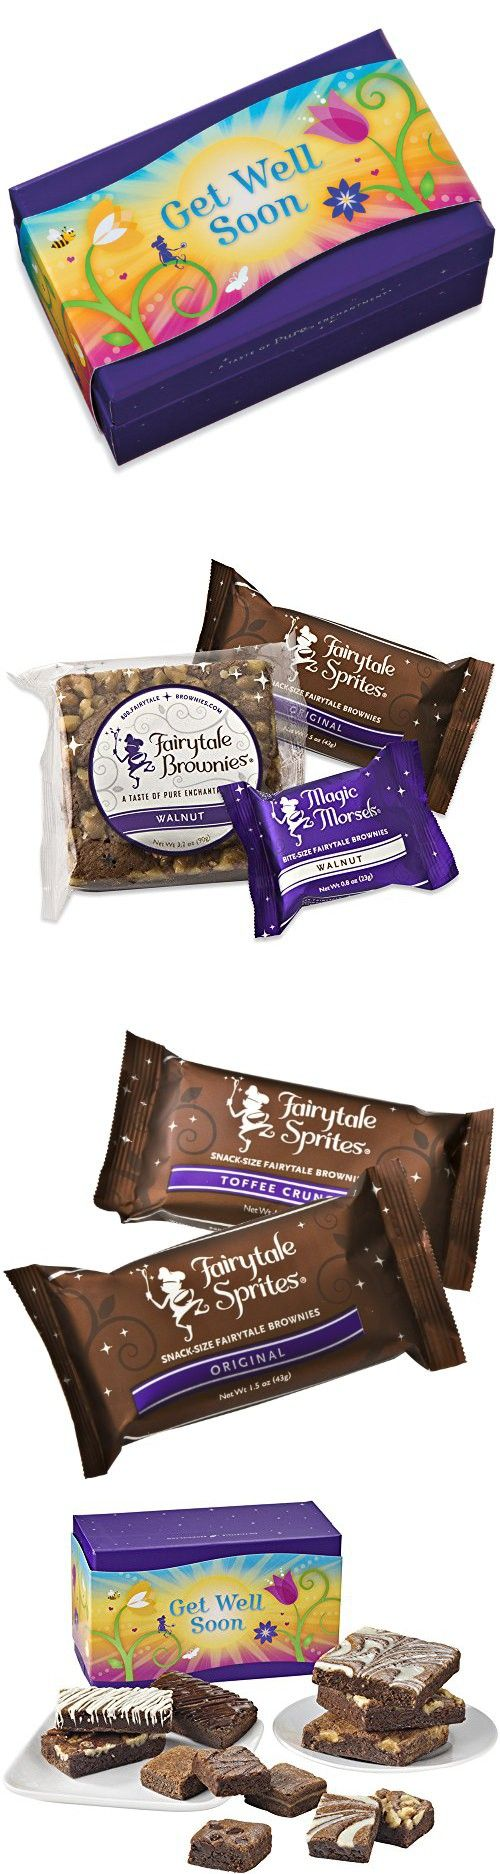 Fairytale Brownies Get Well Treasure Medley Gourmet Food Gift Basket Chocolate Box - Full-Size, Snack-Size and Bite-Size Brownies - 12 Pieces